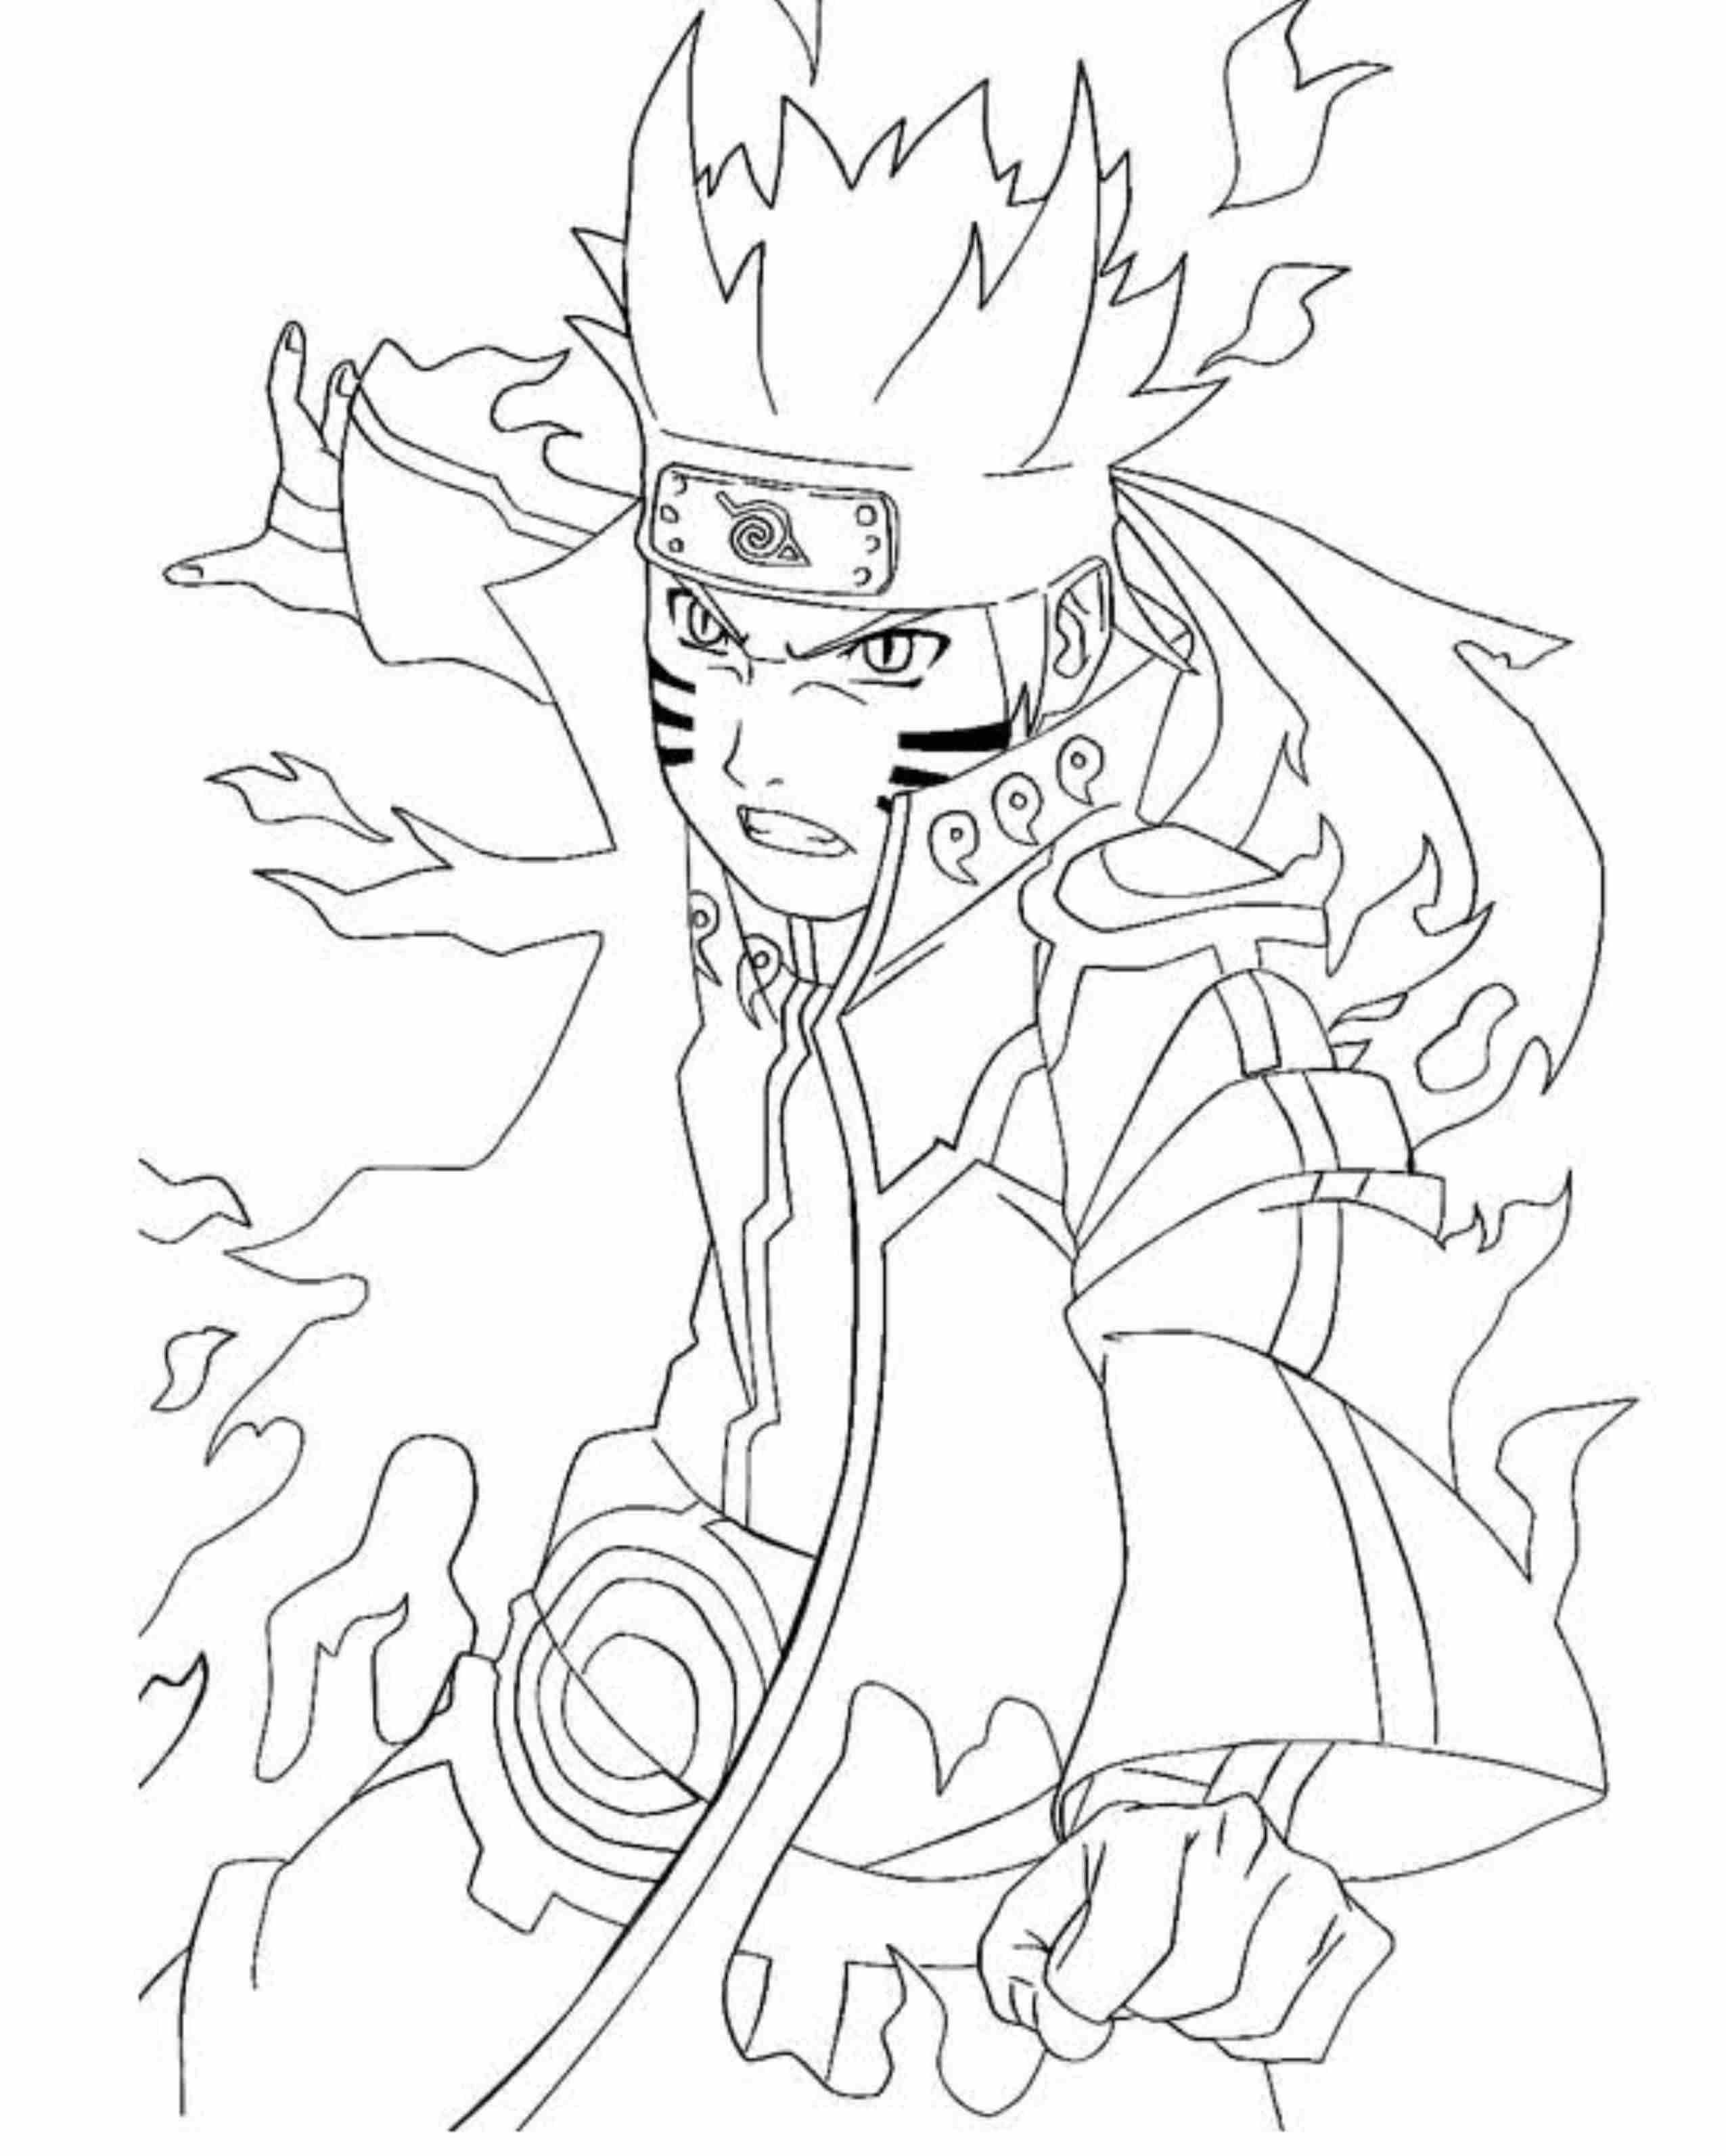 Coloring Pages Of Naruto Shippuden Characters Colouring Pages